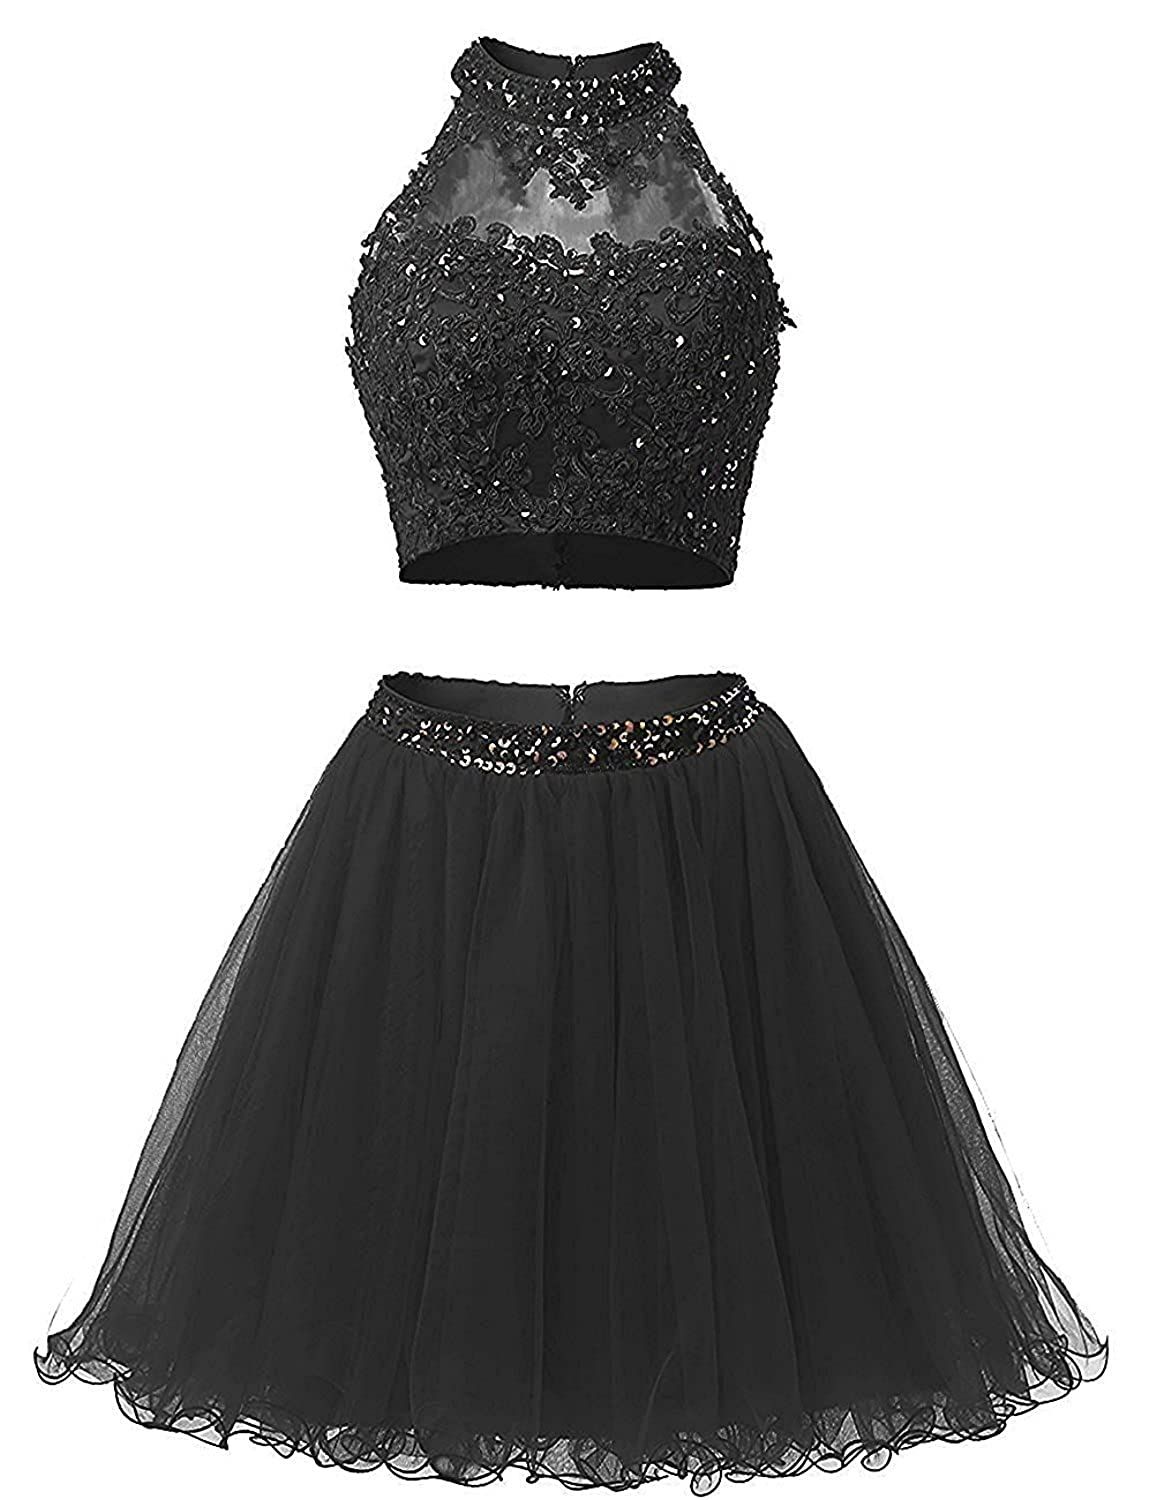 279777ee6fb5 Short Fitted Homecoming Dresses 2016 - raveitsafe